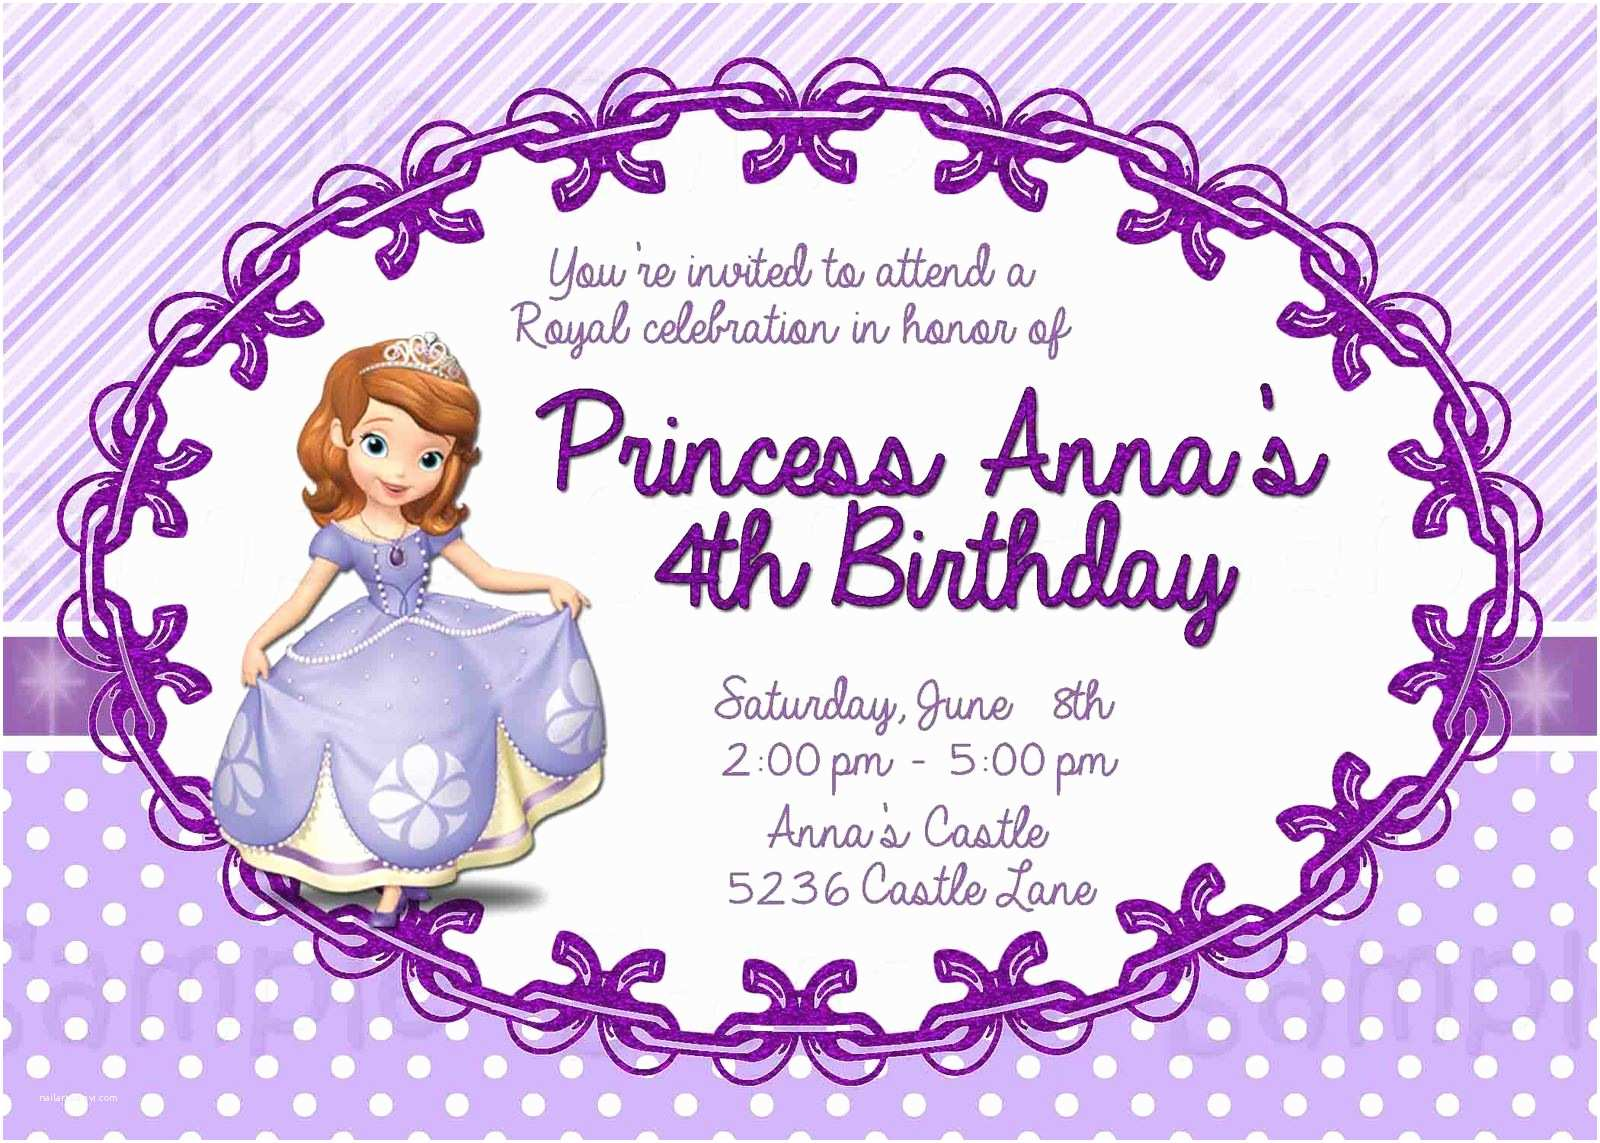 Personalized Birthday Invitations sofia the First Personalized Birthday Invitations